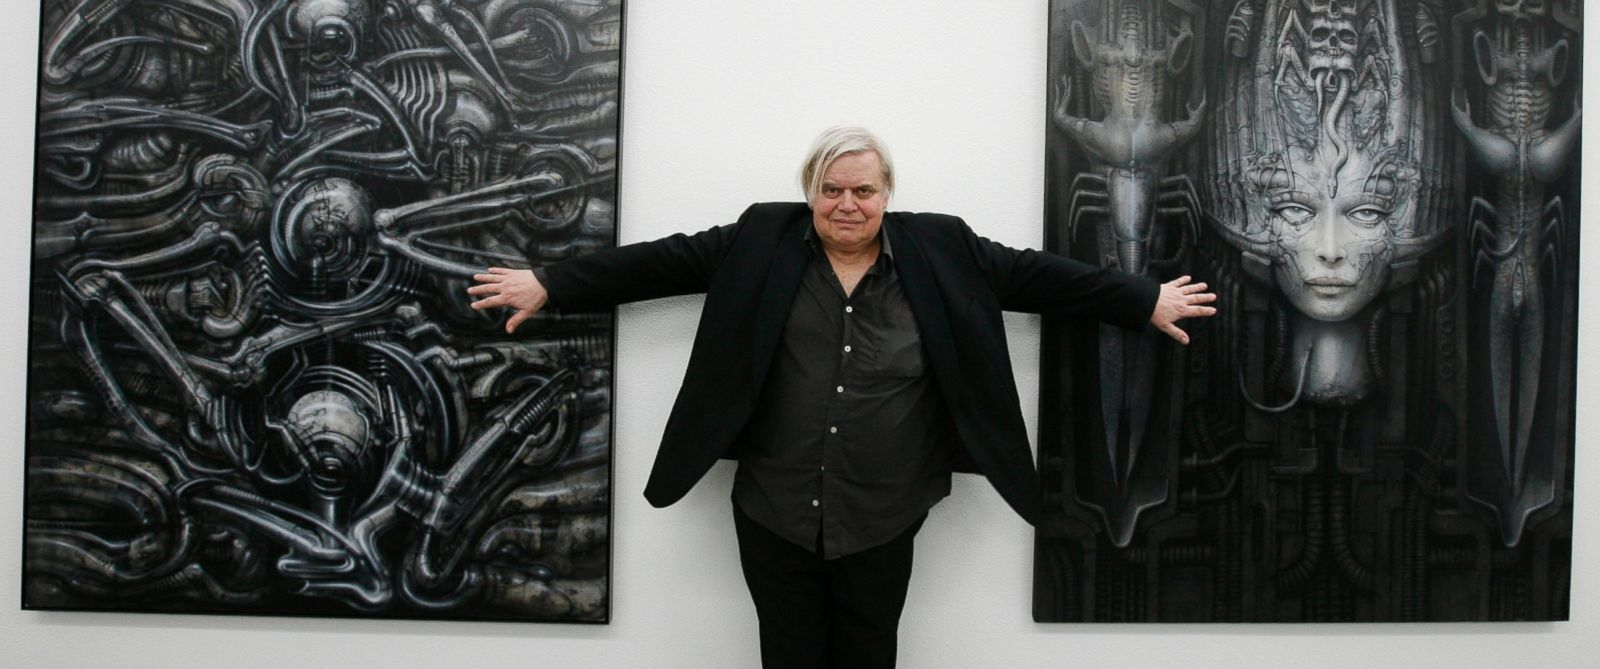 PHOTO: In this June 29, 2007 file picture Swiss artist H.R. Giger poses with two of his works at the art museum in Chur, Switzerland.